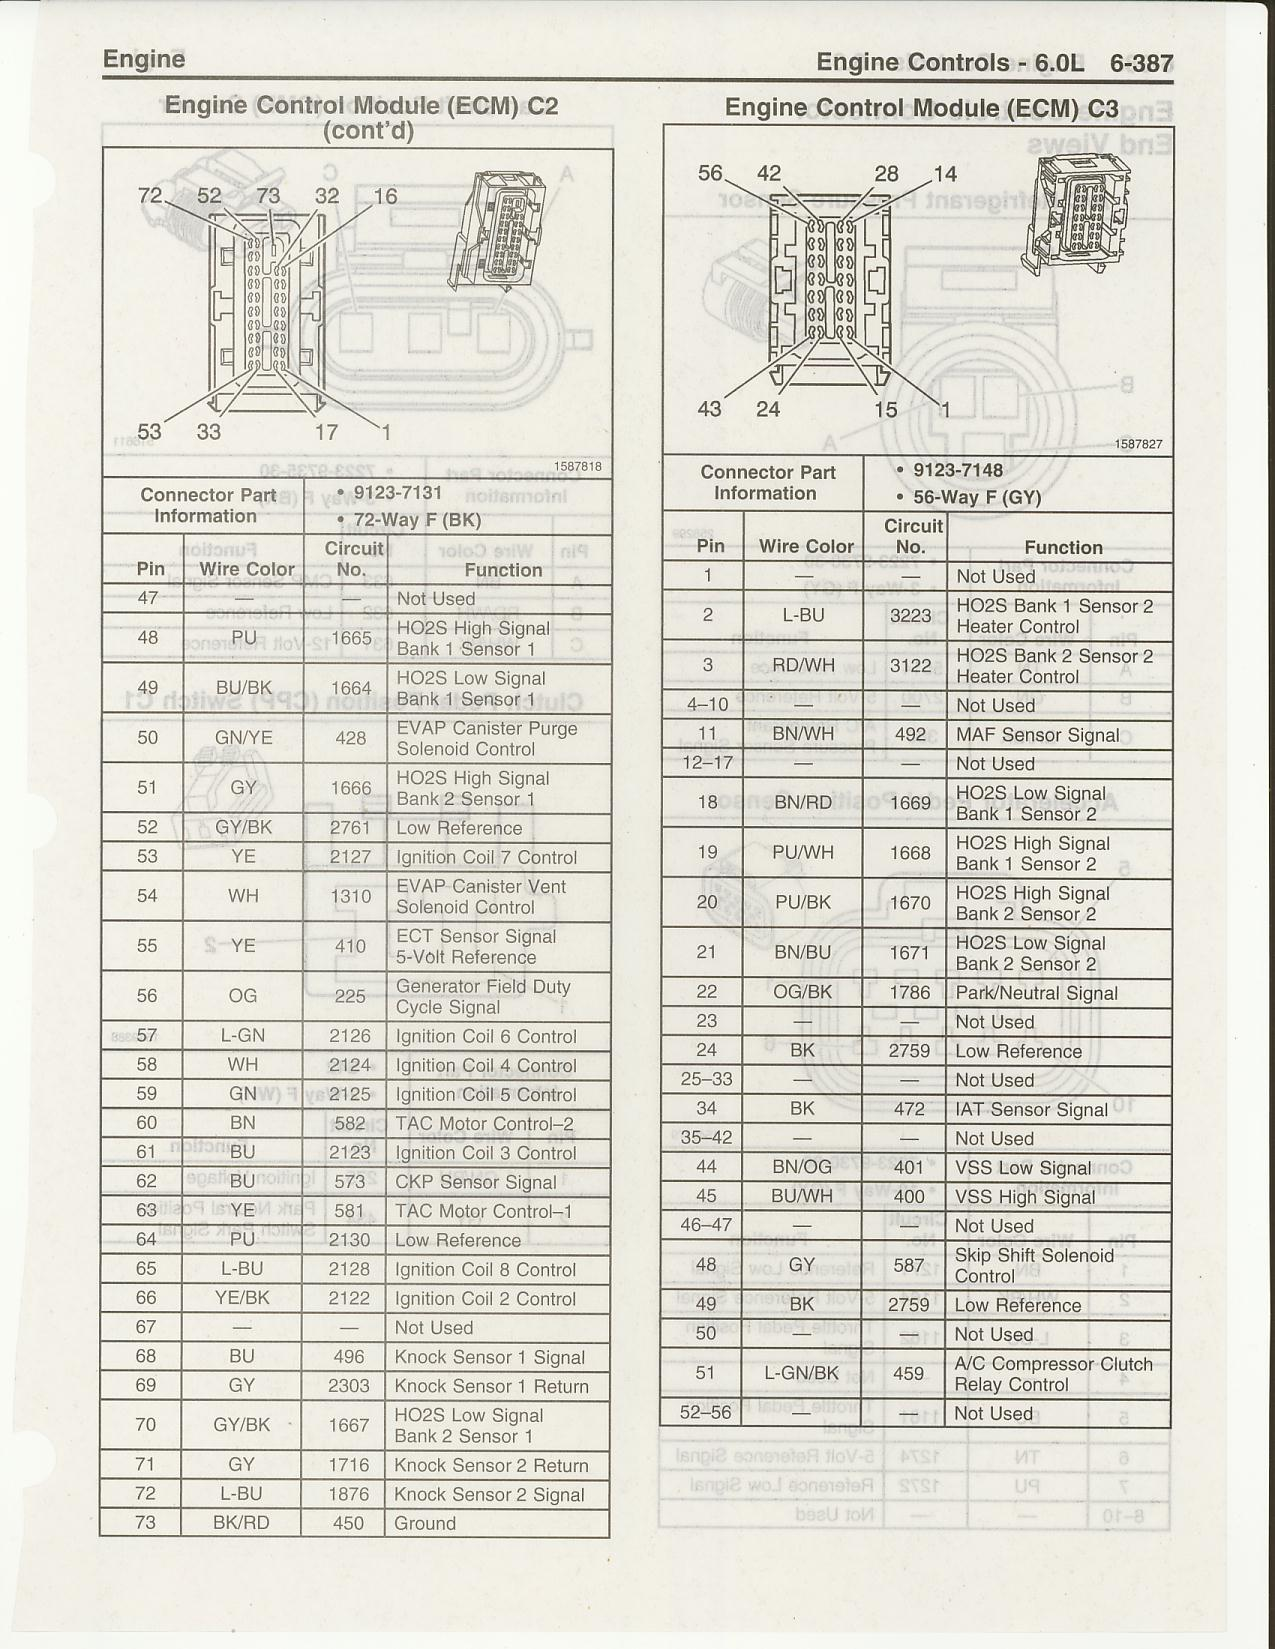 E67 Wiring Diagram About A Gfci Schematic Circuit E38 Schemes Outlets In Series Diagrams Another Blog